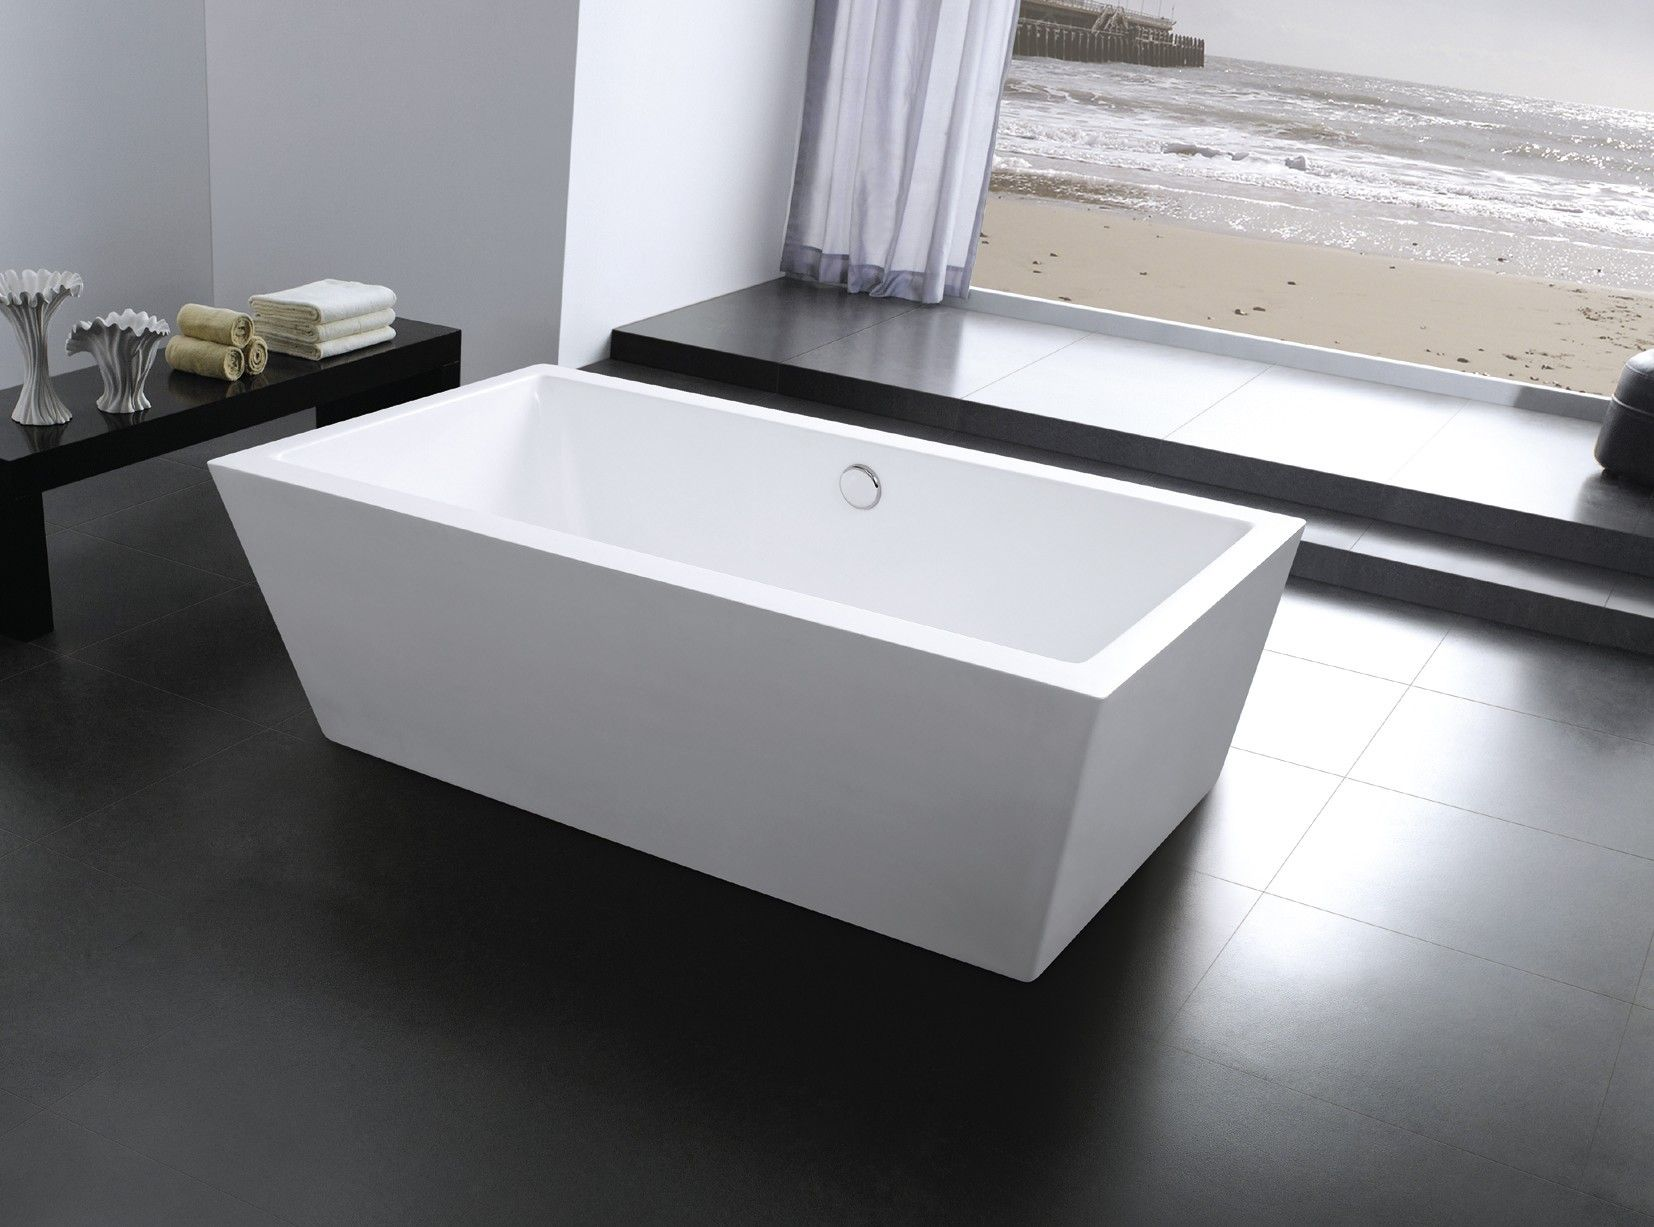 modern bathtubs  bedroom and living room image collections - stand alone bathtubs dogs cuteness homes stand alone tubs cheap osbdata com